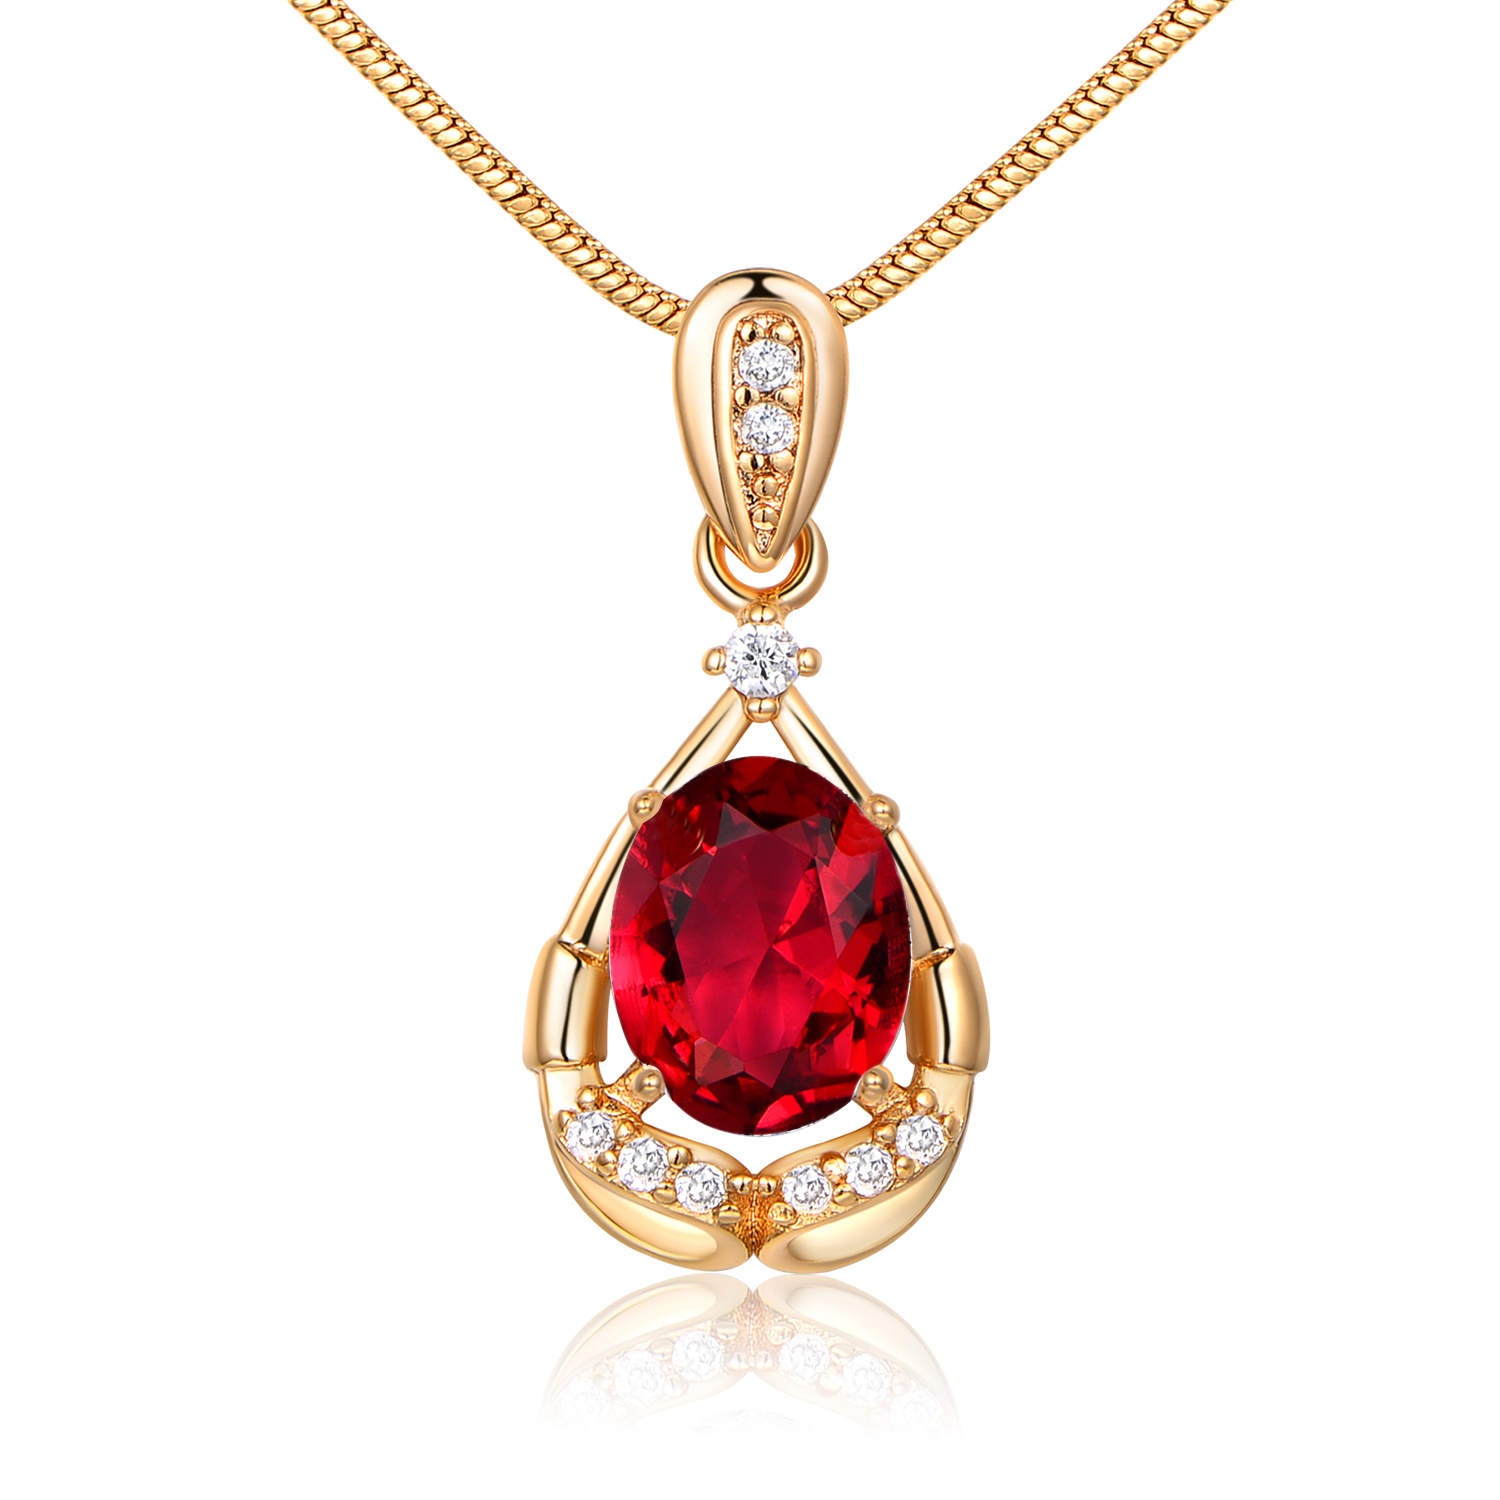 Luxury Pear Ribbon Pendant Oval Sapphire Crystal Gold Filled Women Lady Necklace